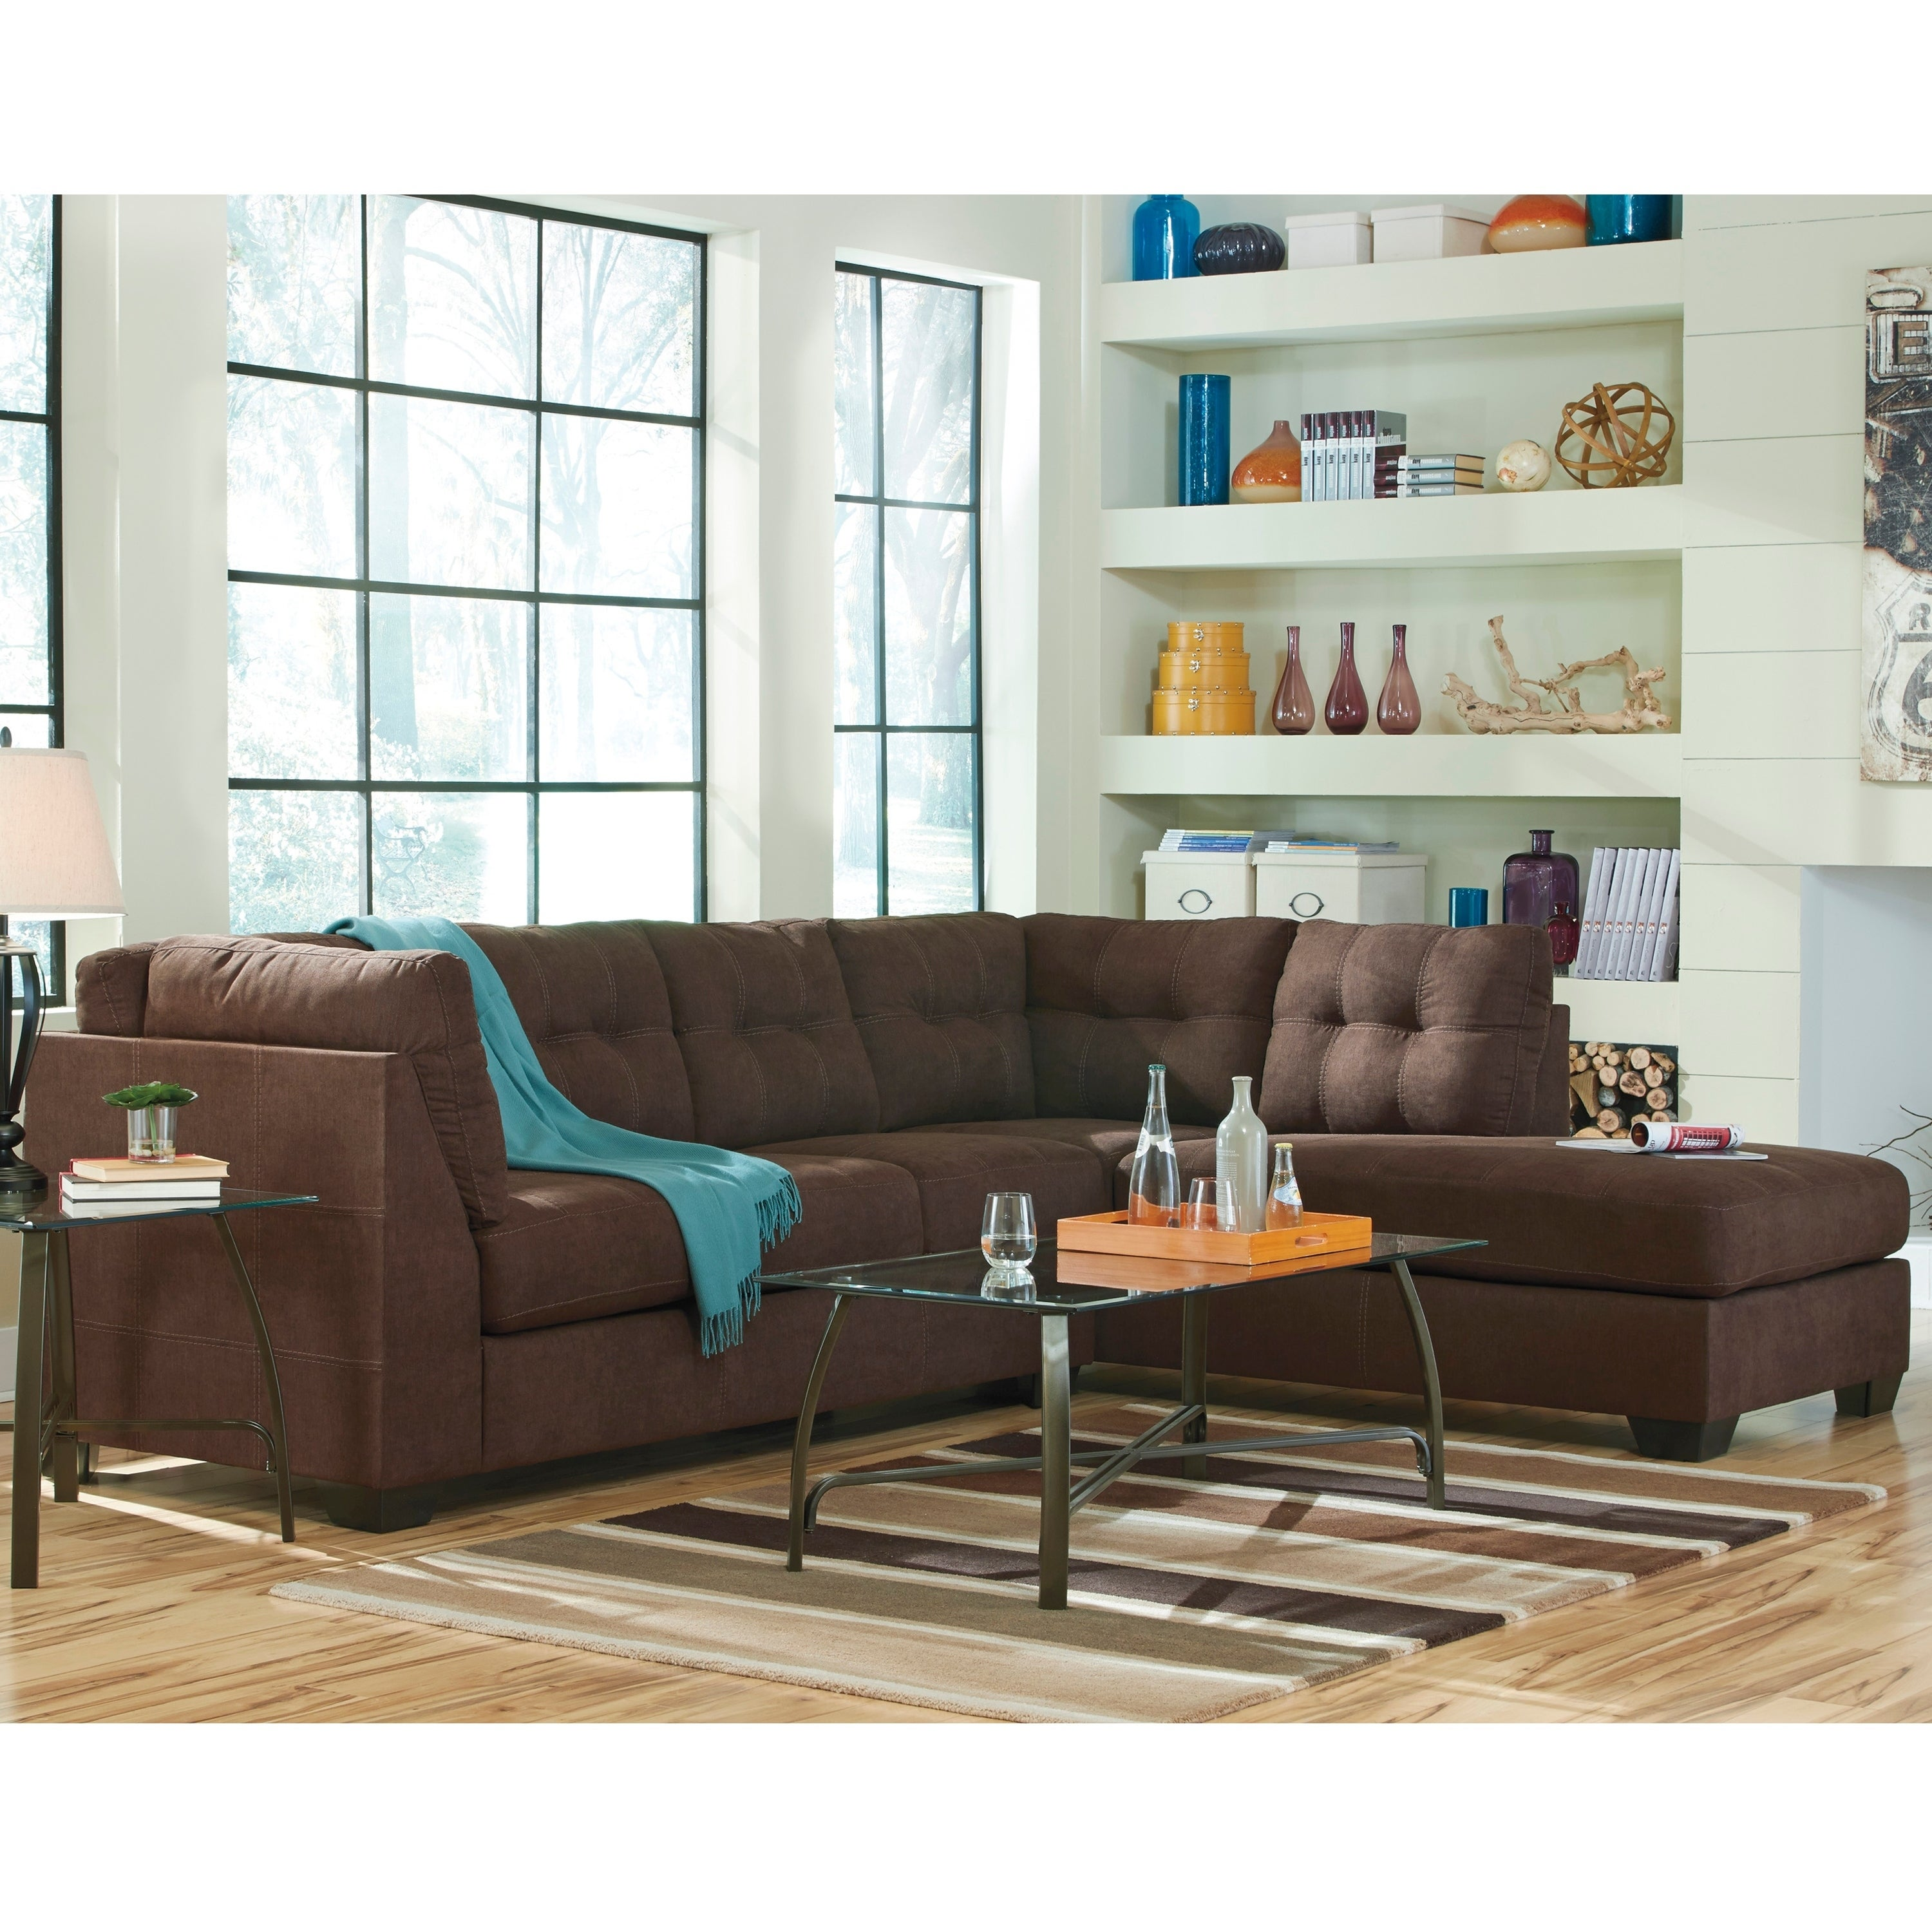 Benchcraft Maier Microfiber Sectional Sofa With Right Side Facing Chaise